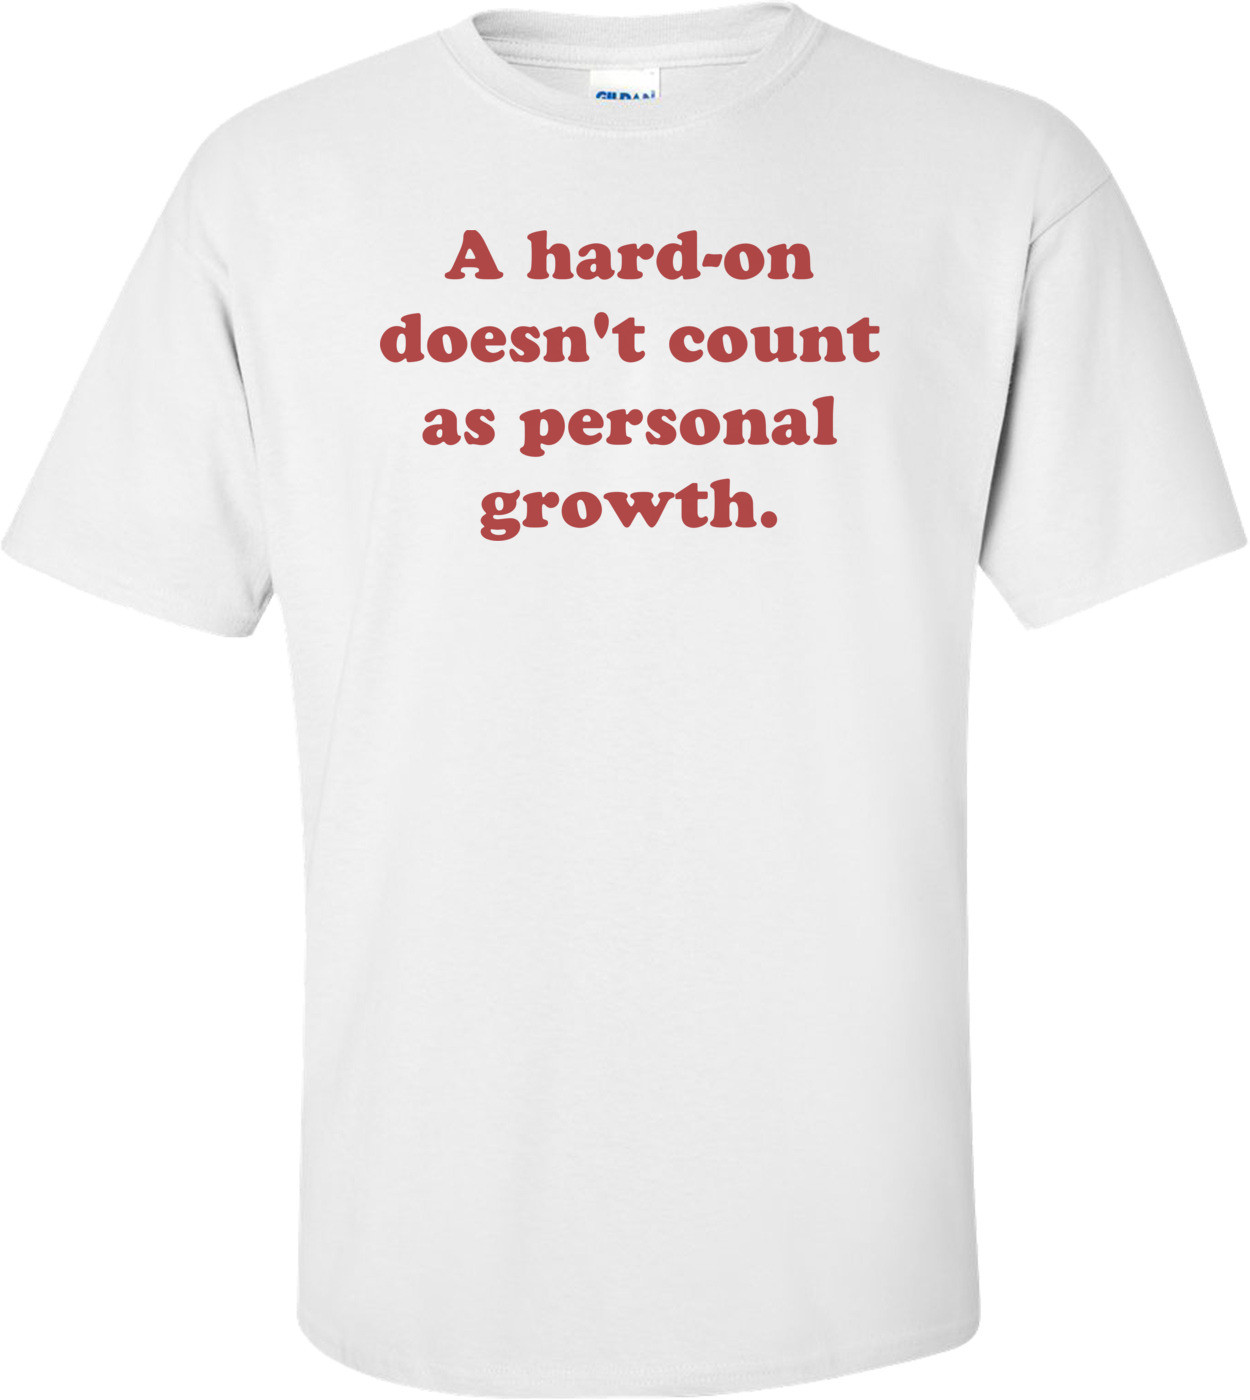 A hard-on doesn't count as personal growth. Shirt